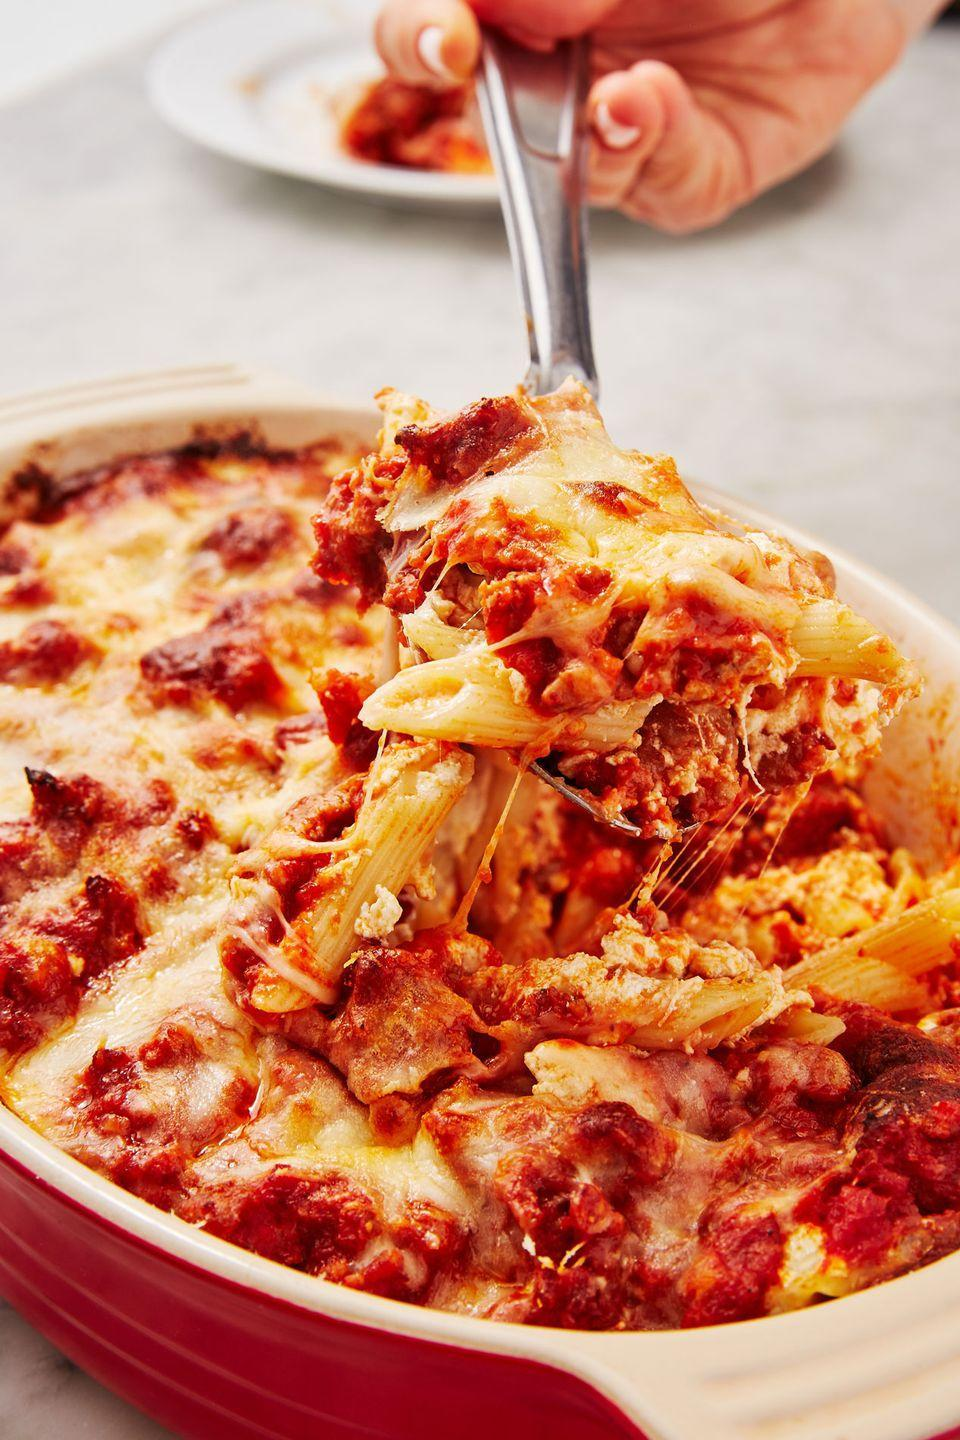 """<p>Essentially an easier lasagna made with penne.</p><p>Get the recipe from <a href=""""https://www.delish.com/cooking/recipe-ideas/a29777181/classic-mostaccioli-recipe/"""" rel=""""nofollow noopener"""" target=""""_blank"""" data-ylk=""""slk:Delish"""" class=""""link rapid-noclick-resp"""">Delish</a>.</p>"""